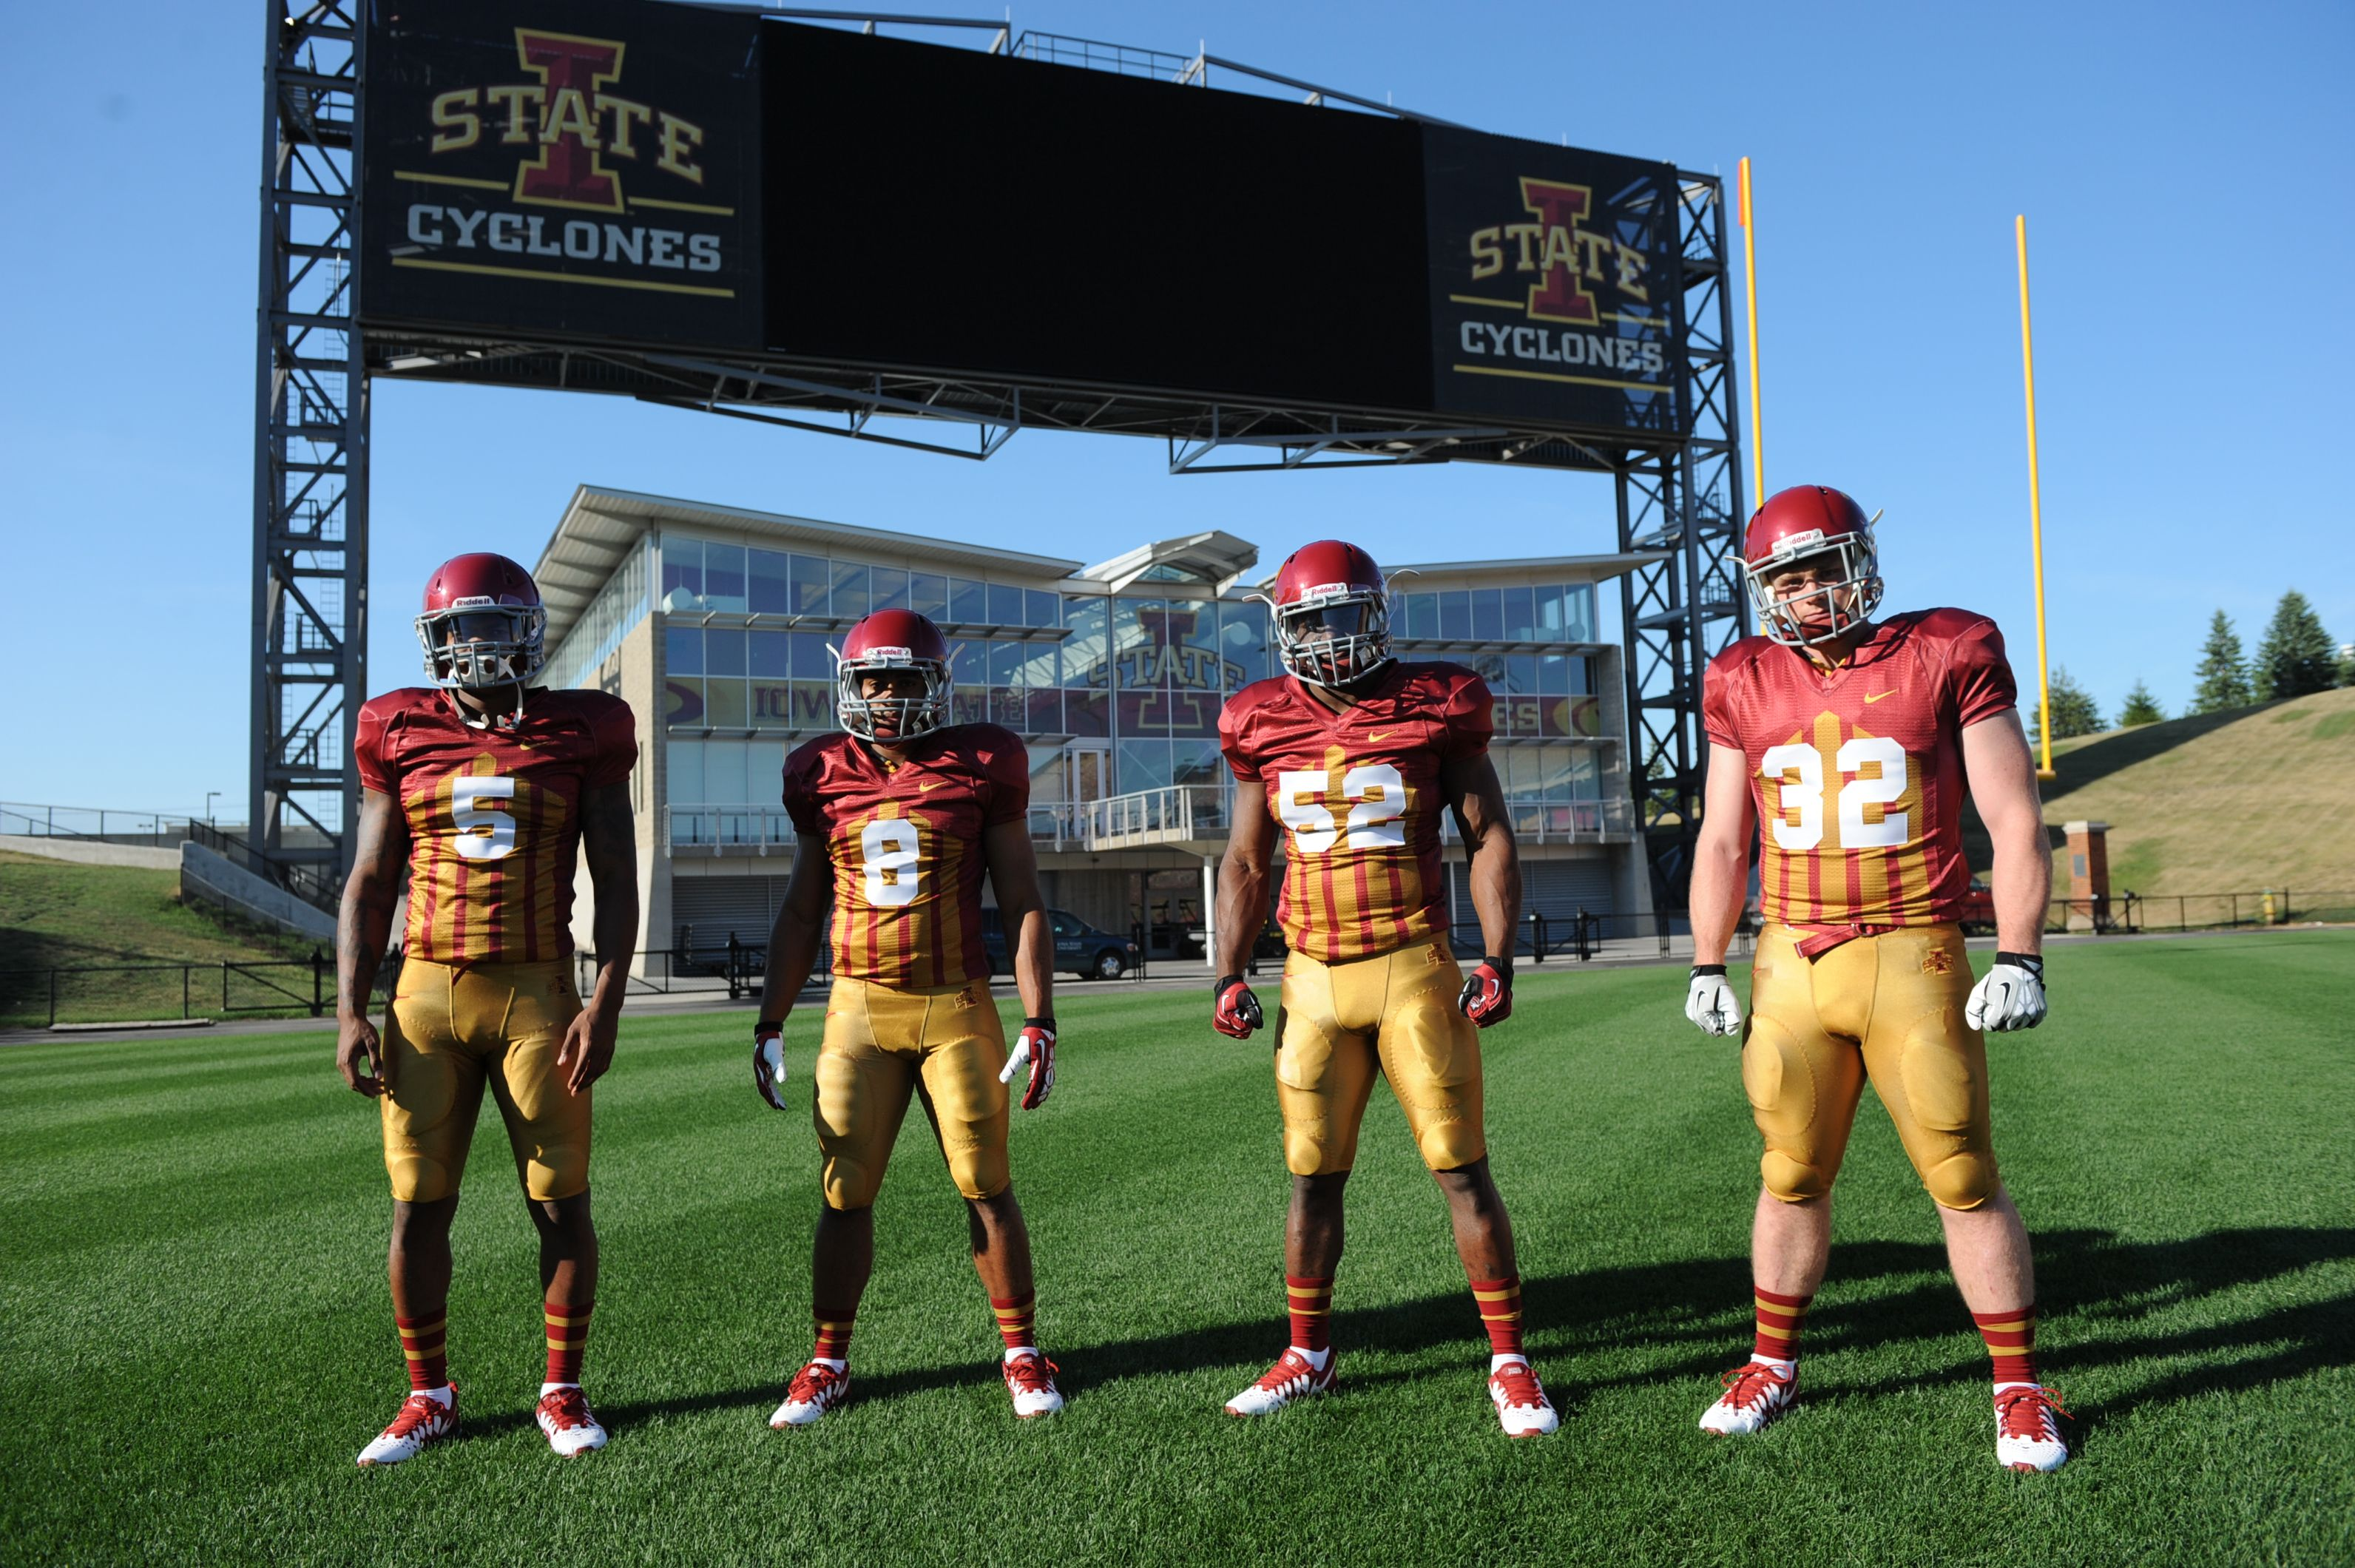 They Are Similar To The 1920s Uniform Worn By Iowa State Legend